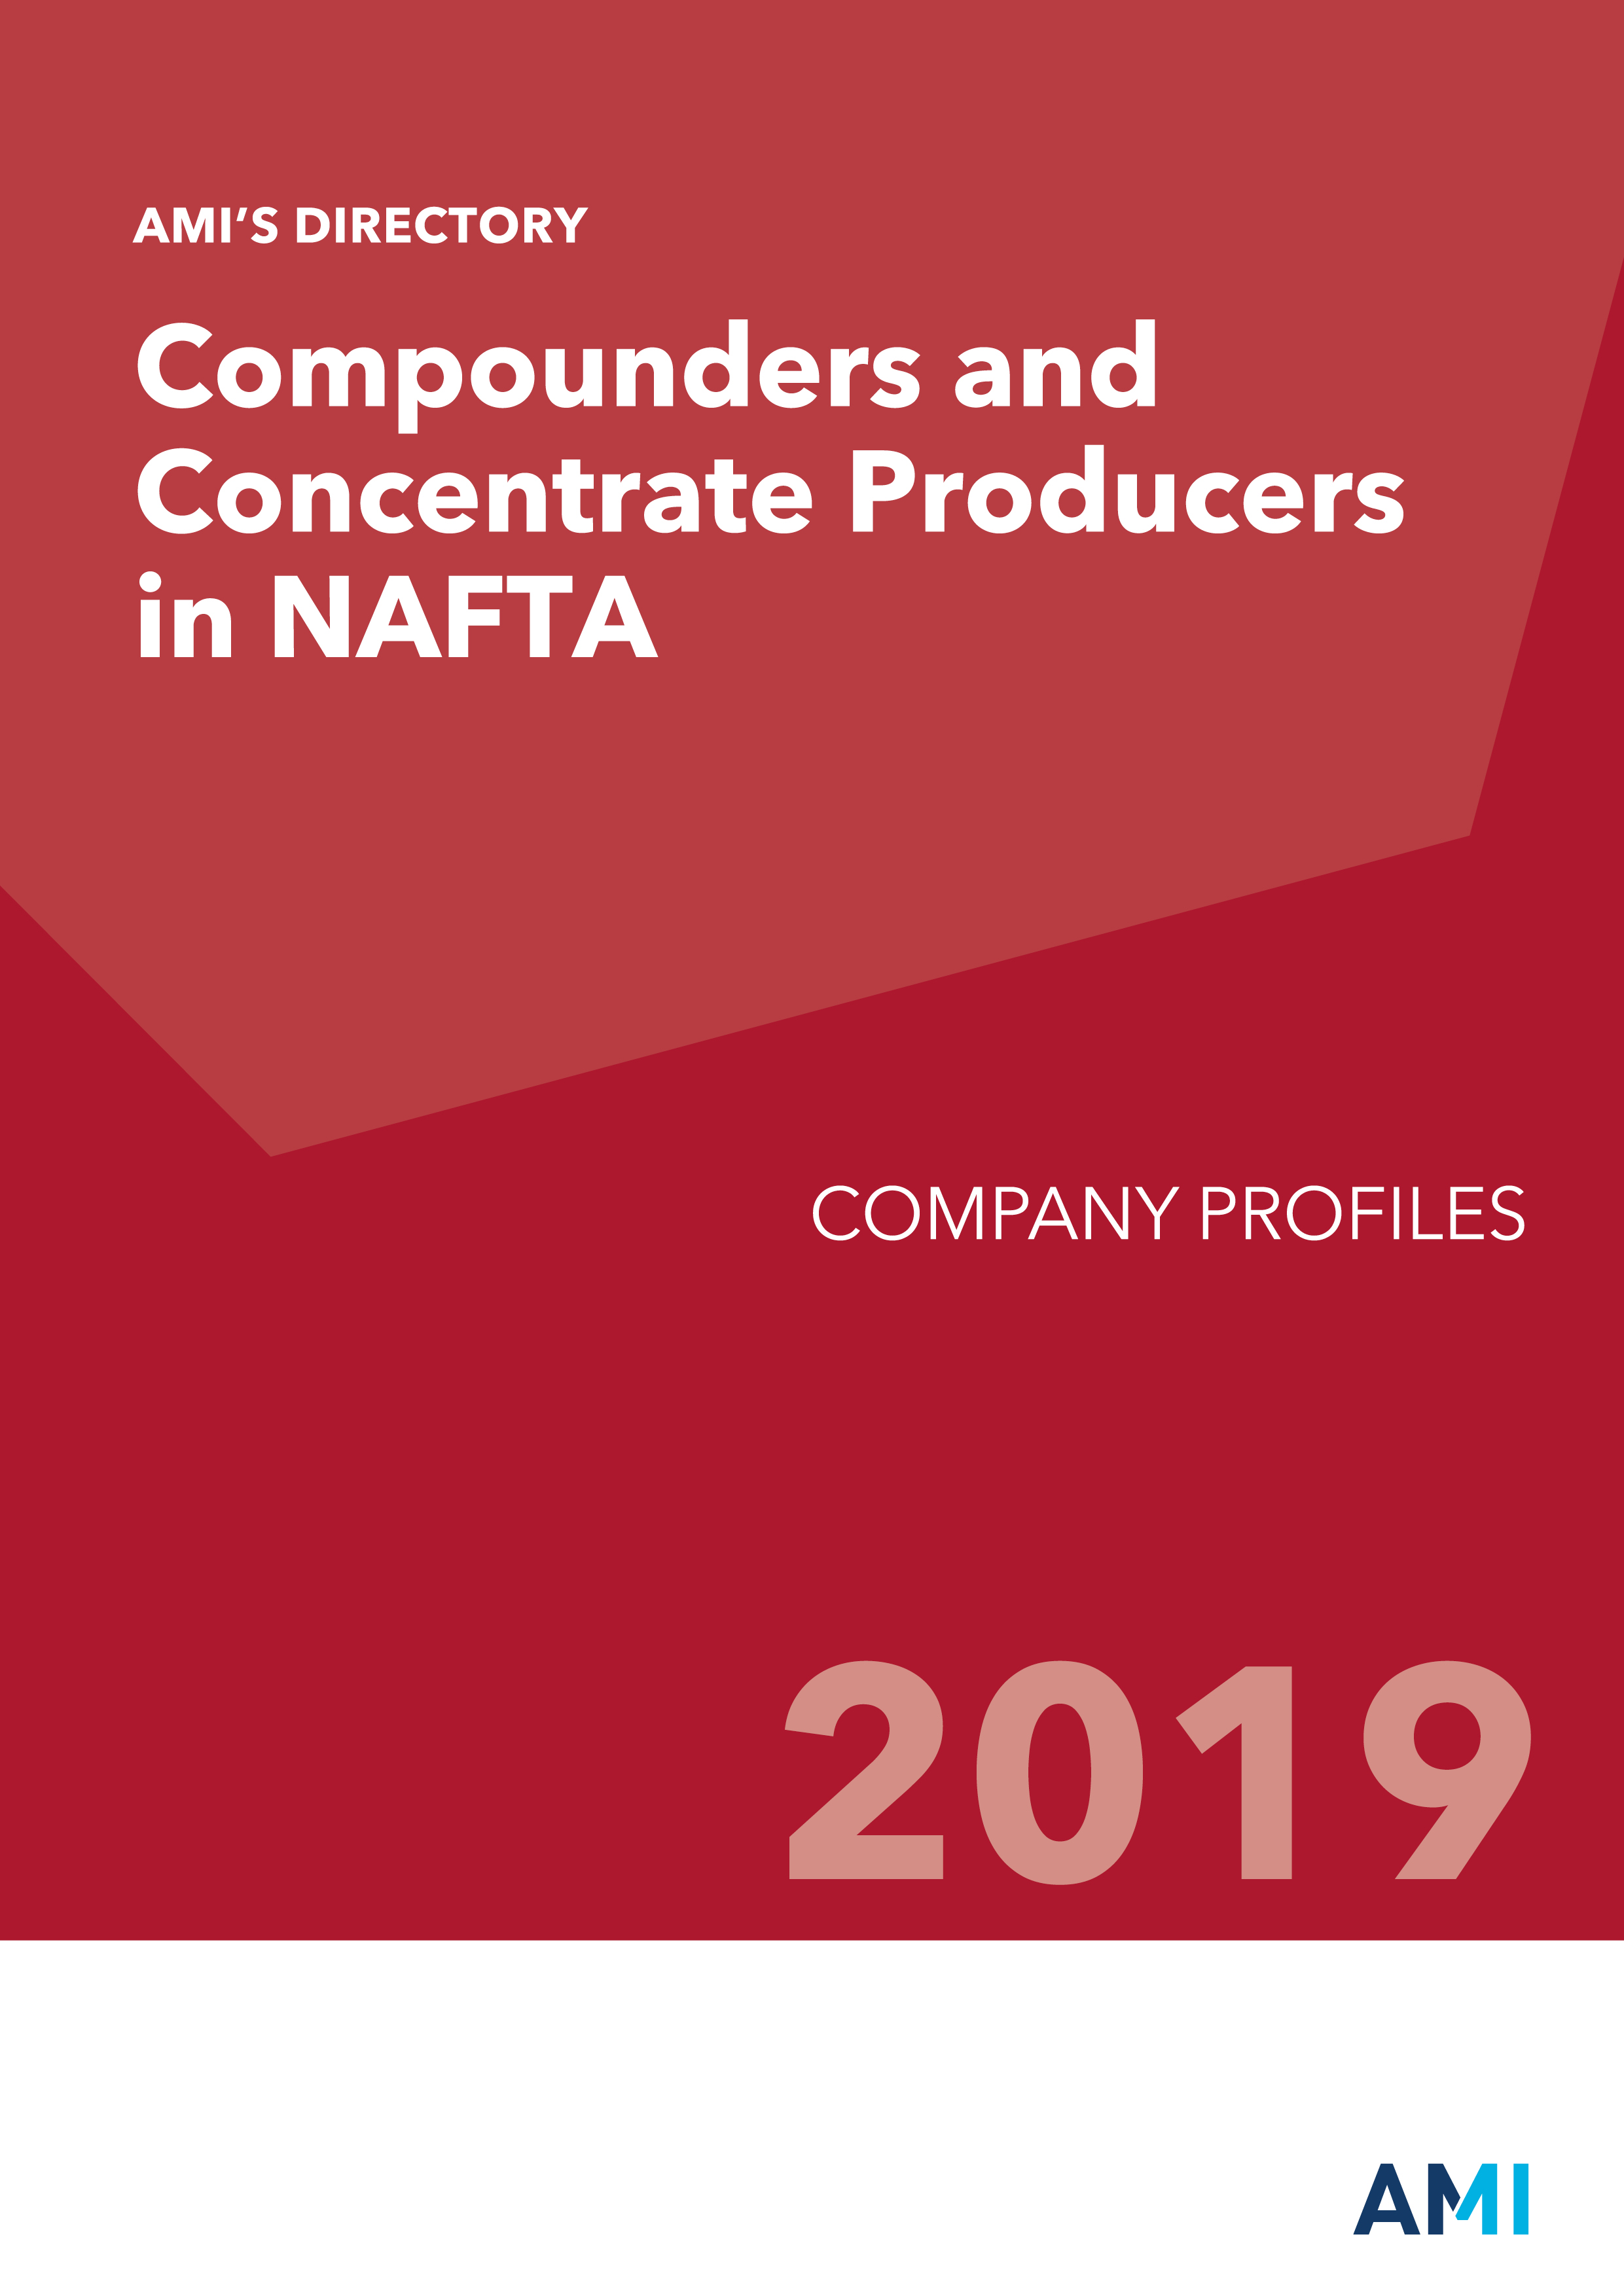 Compounders and Concentrate Producers in North America - AMI's Directory